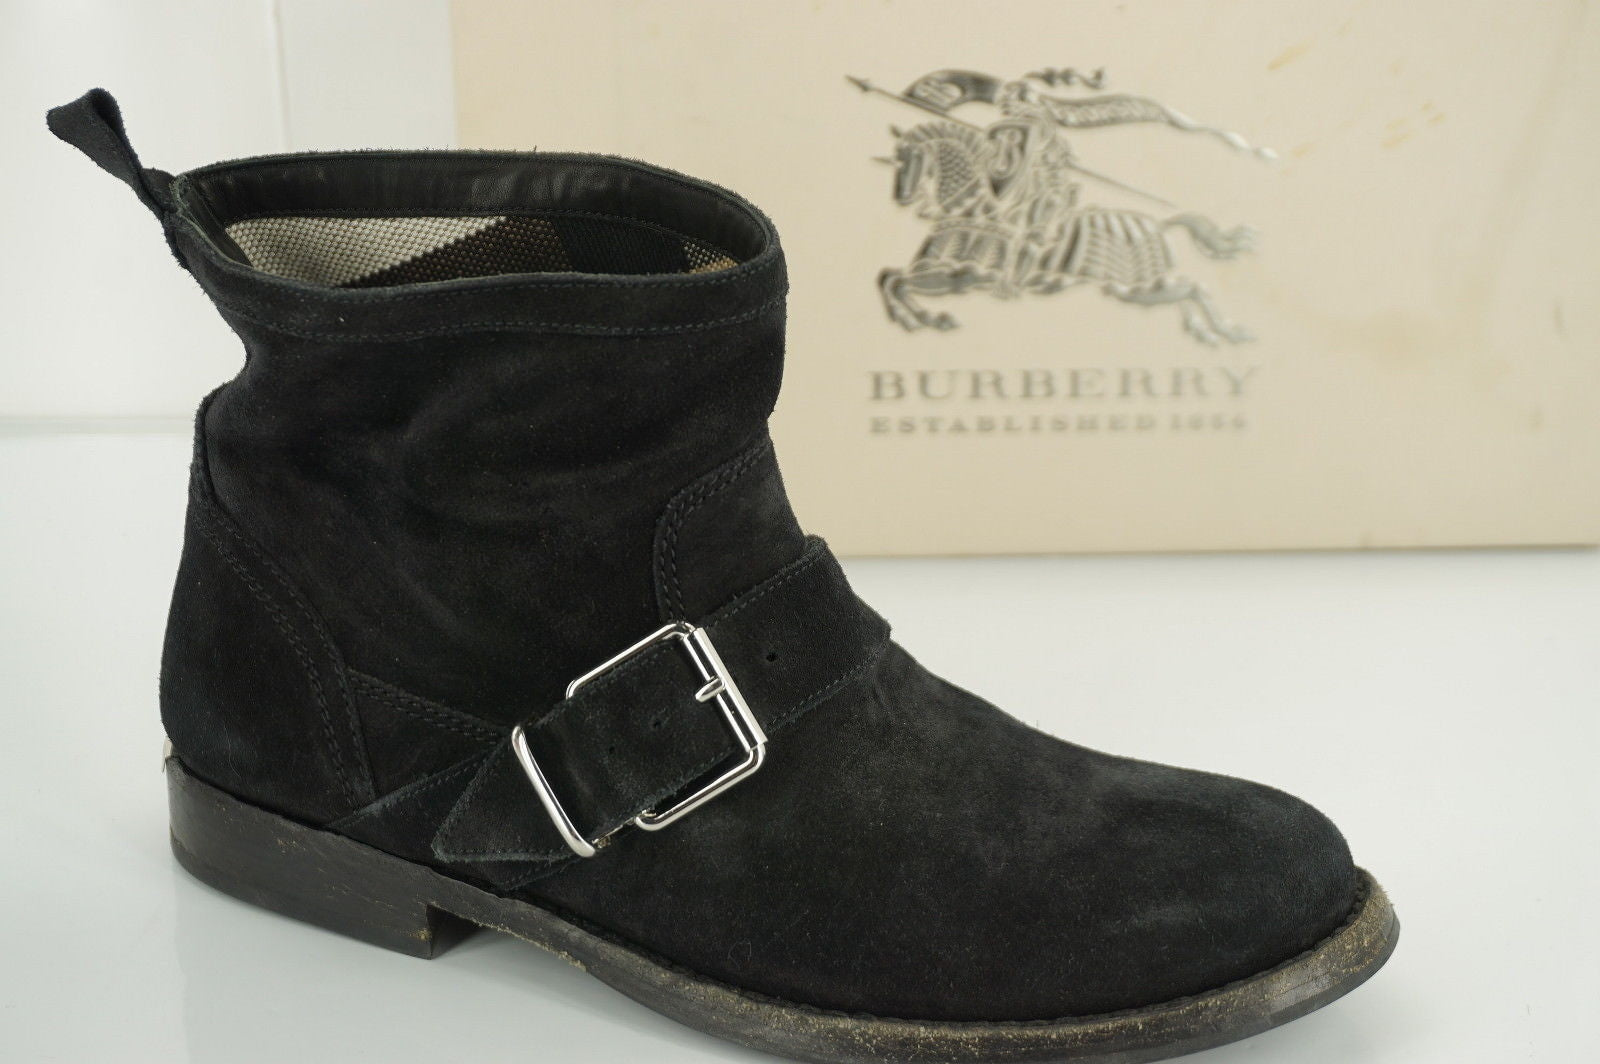 Burberry Black Suede Motor Biker Short Ankle Boots Size 35 House Check $495